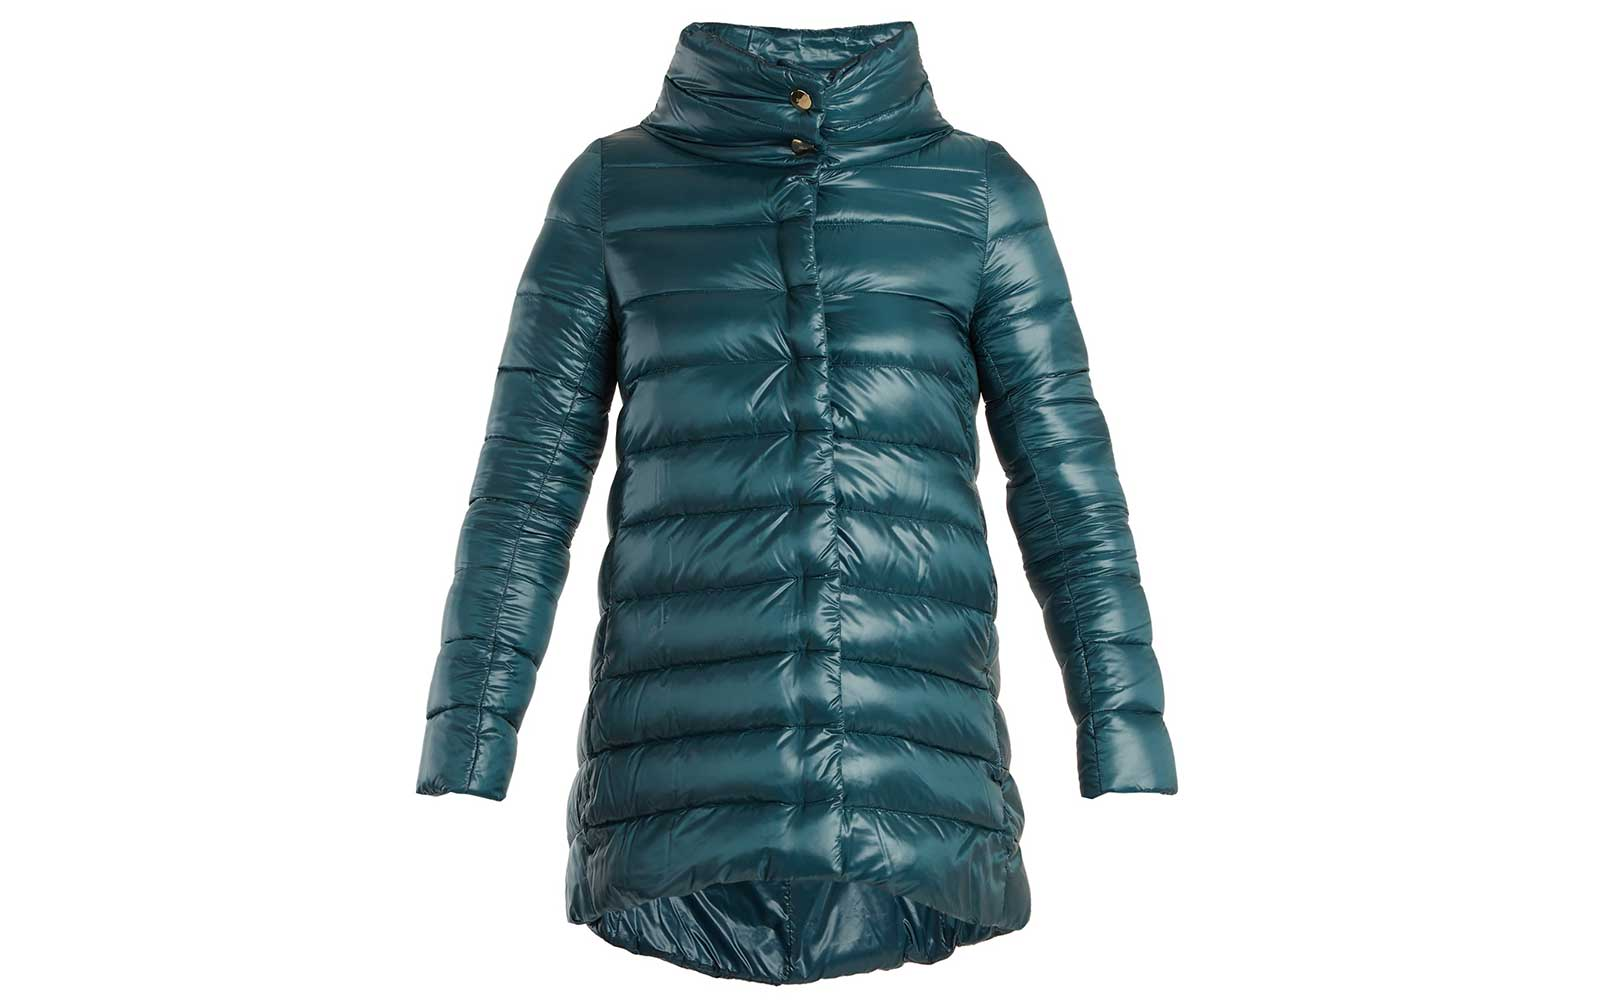 Jewel toned puffer coat